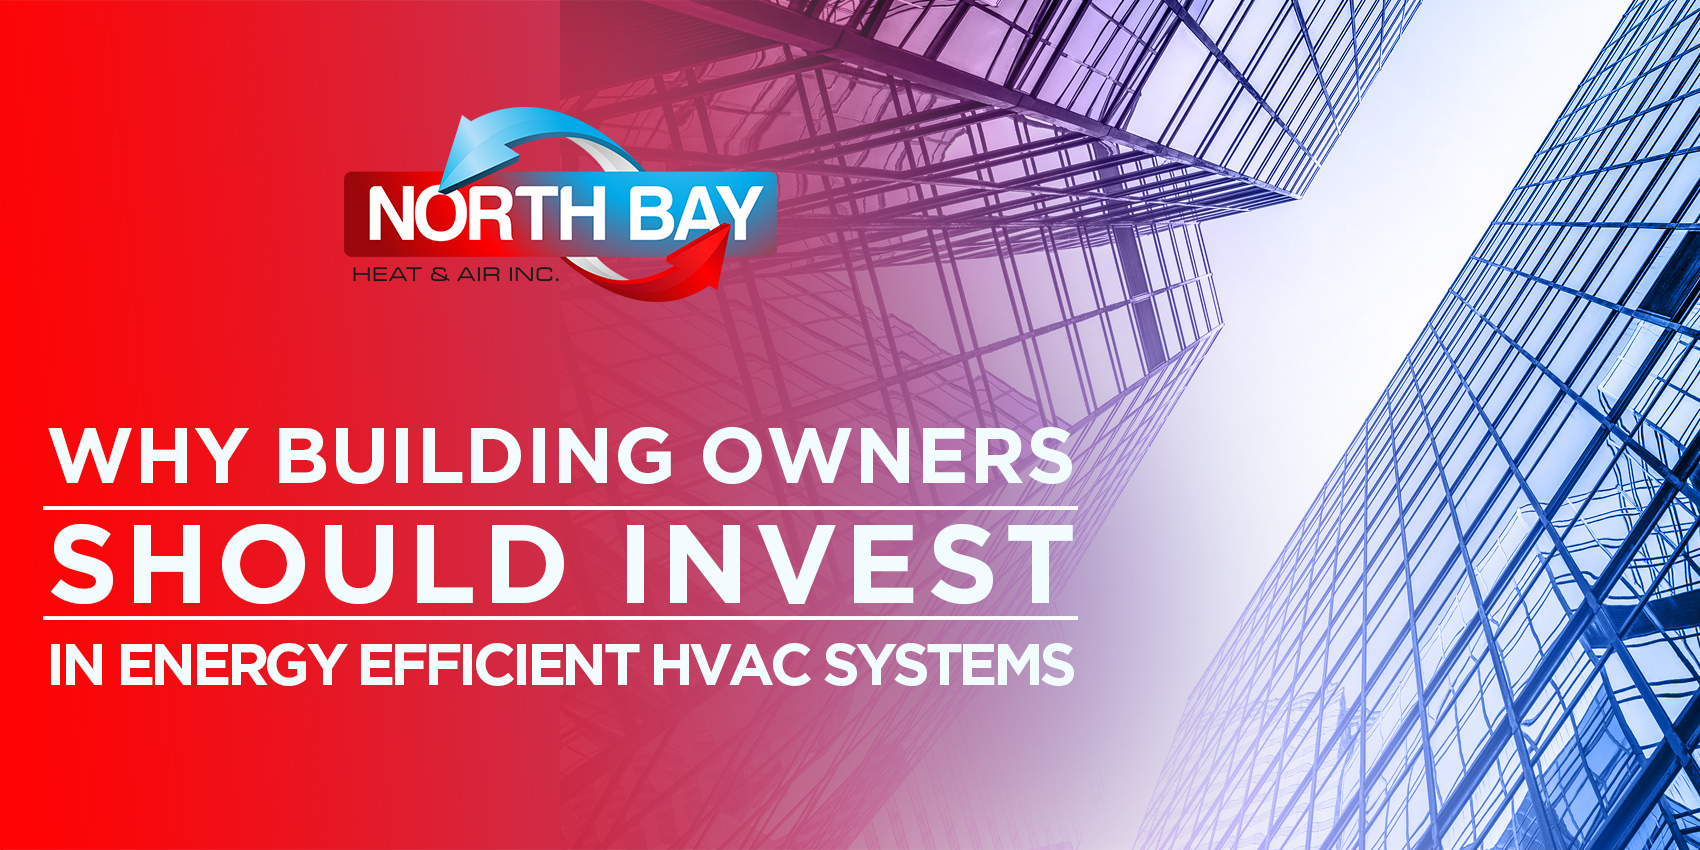 Why Building Owners Should Invest in Energy Efficient HVAC Systems